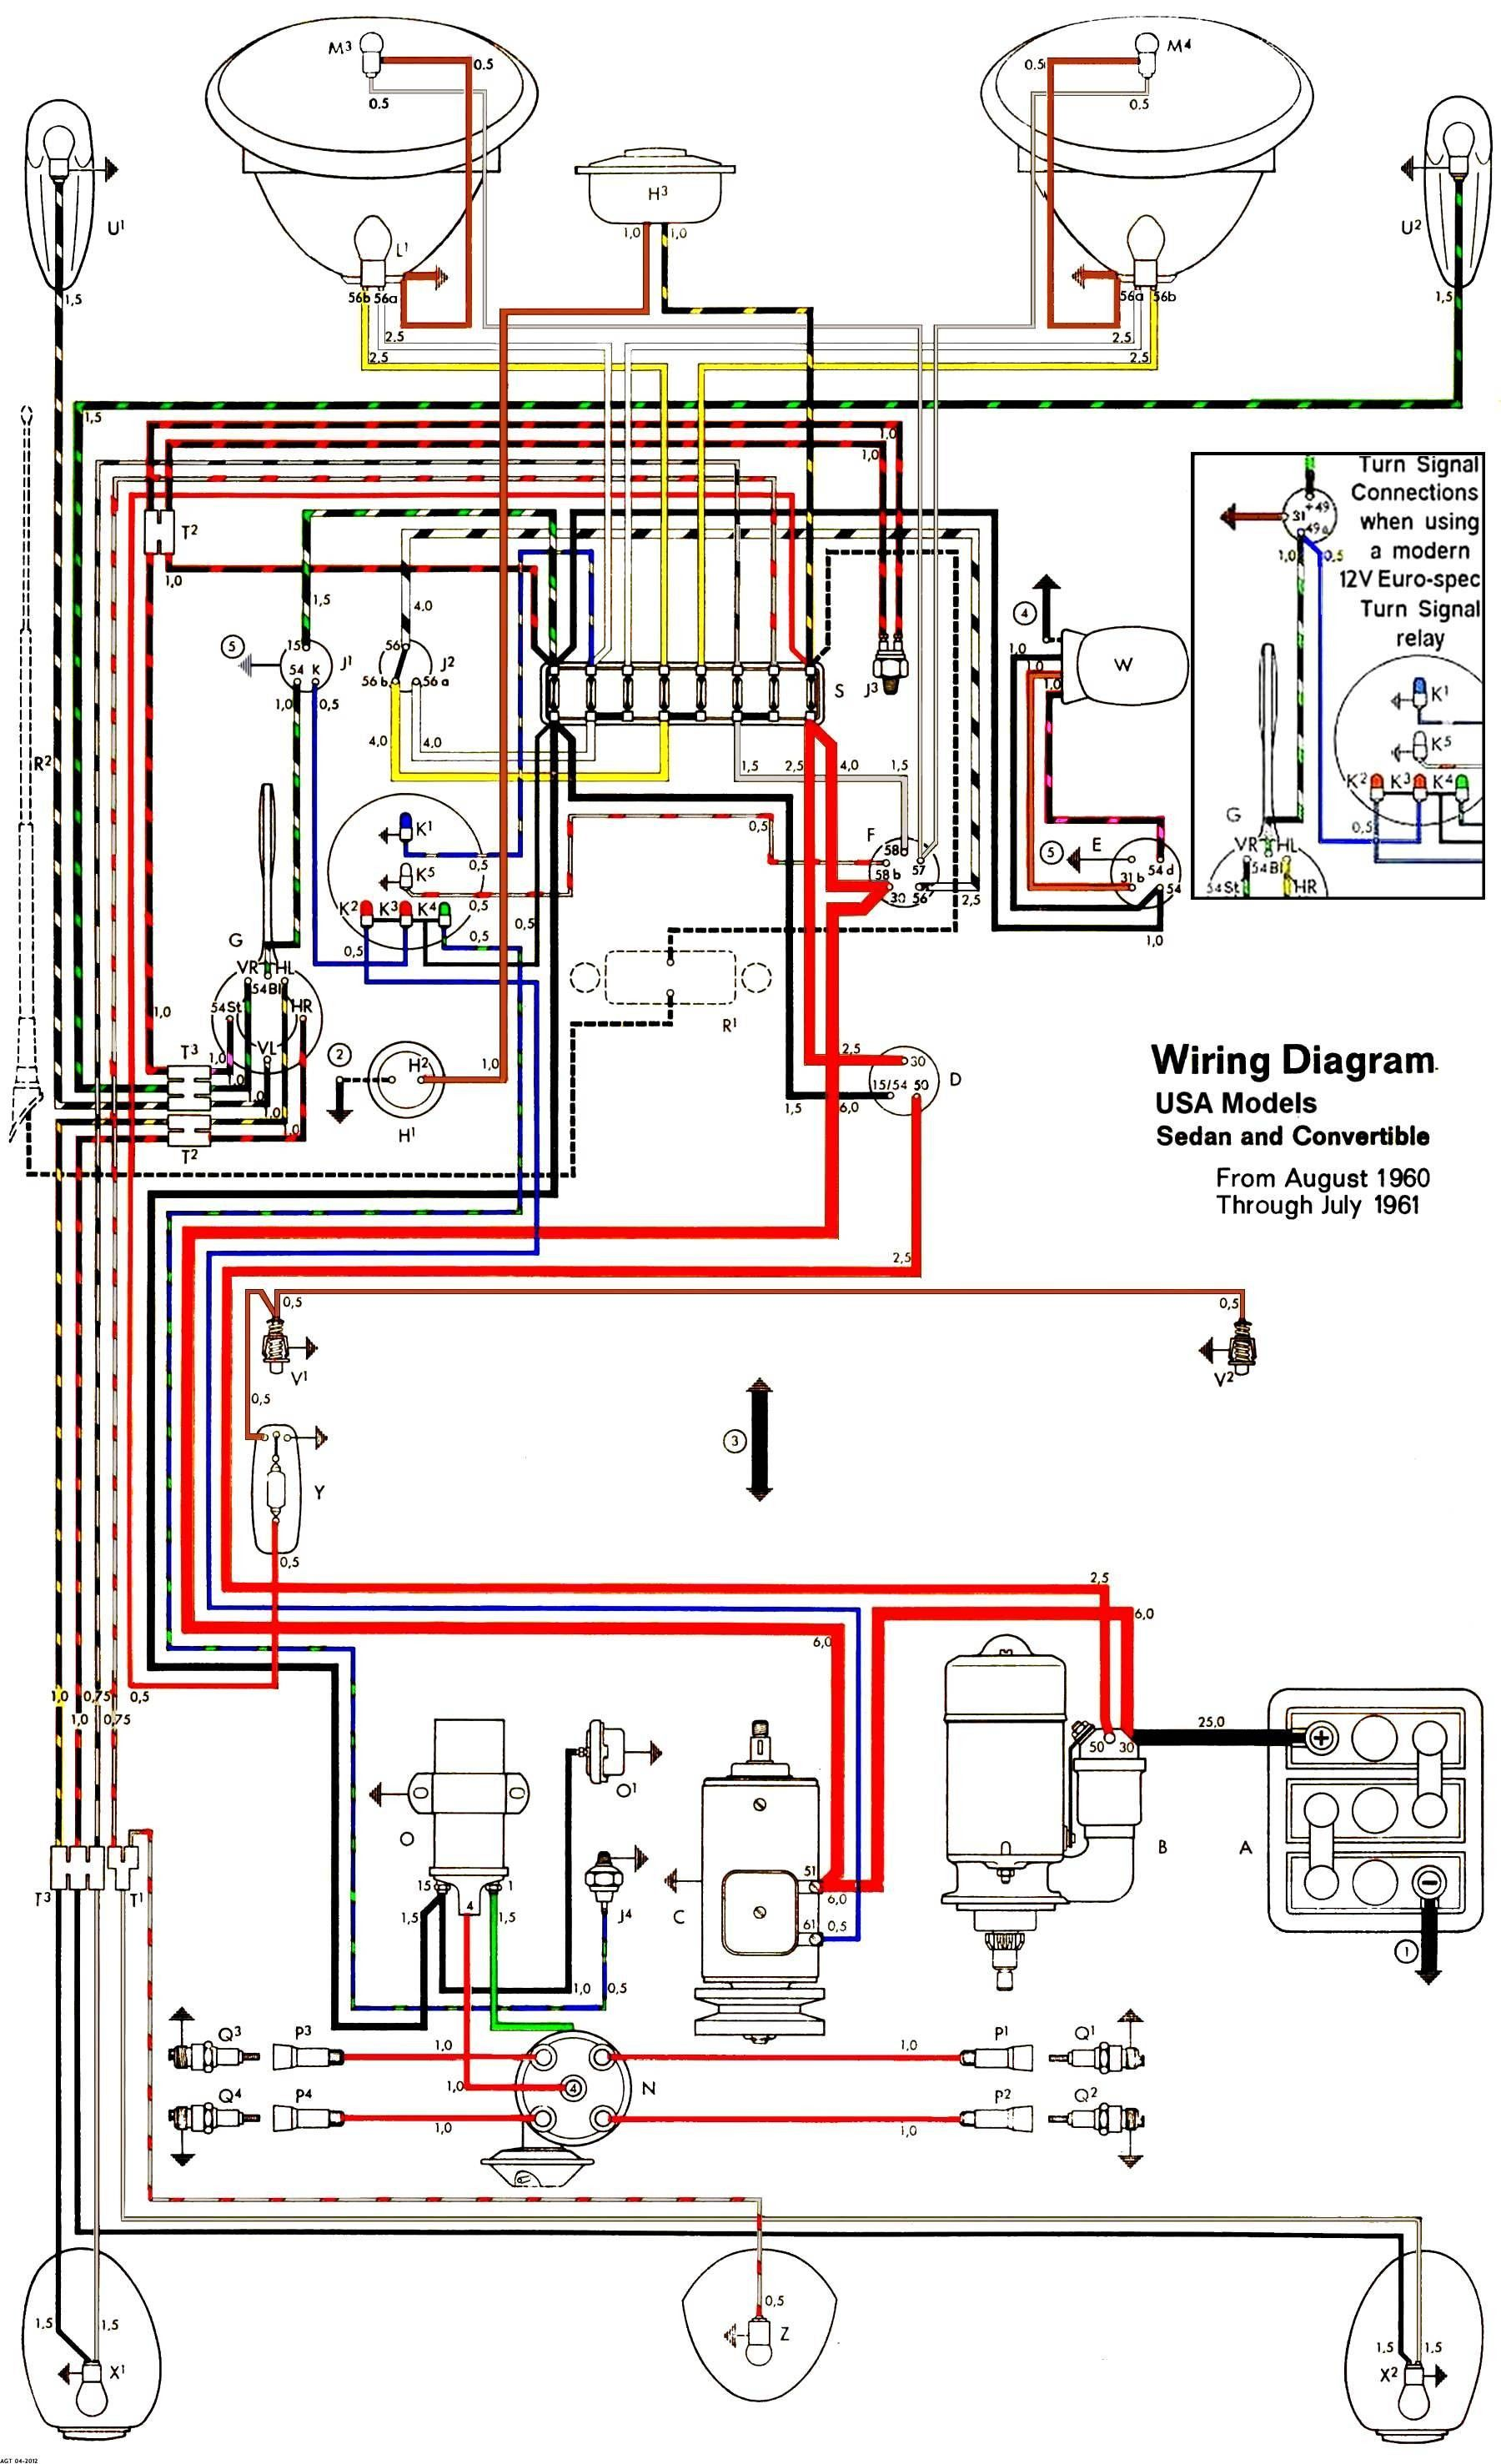 1970 vw karmann ghia wiring diagram new wiring scheme diagram wiringdiagram diagramming diagramm  new wiring scheme diagram